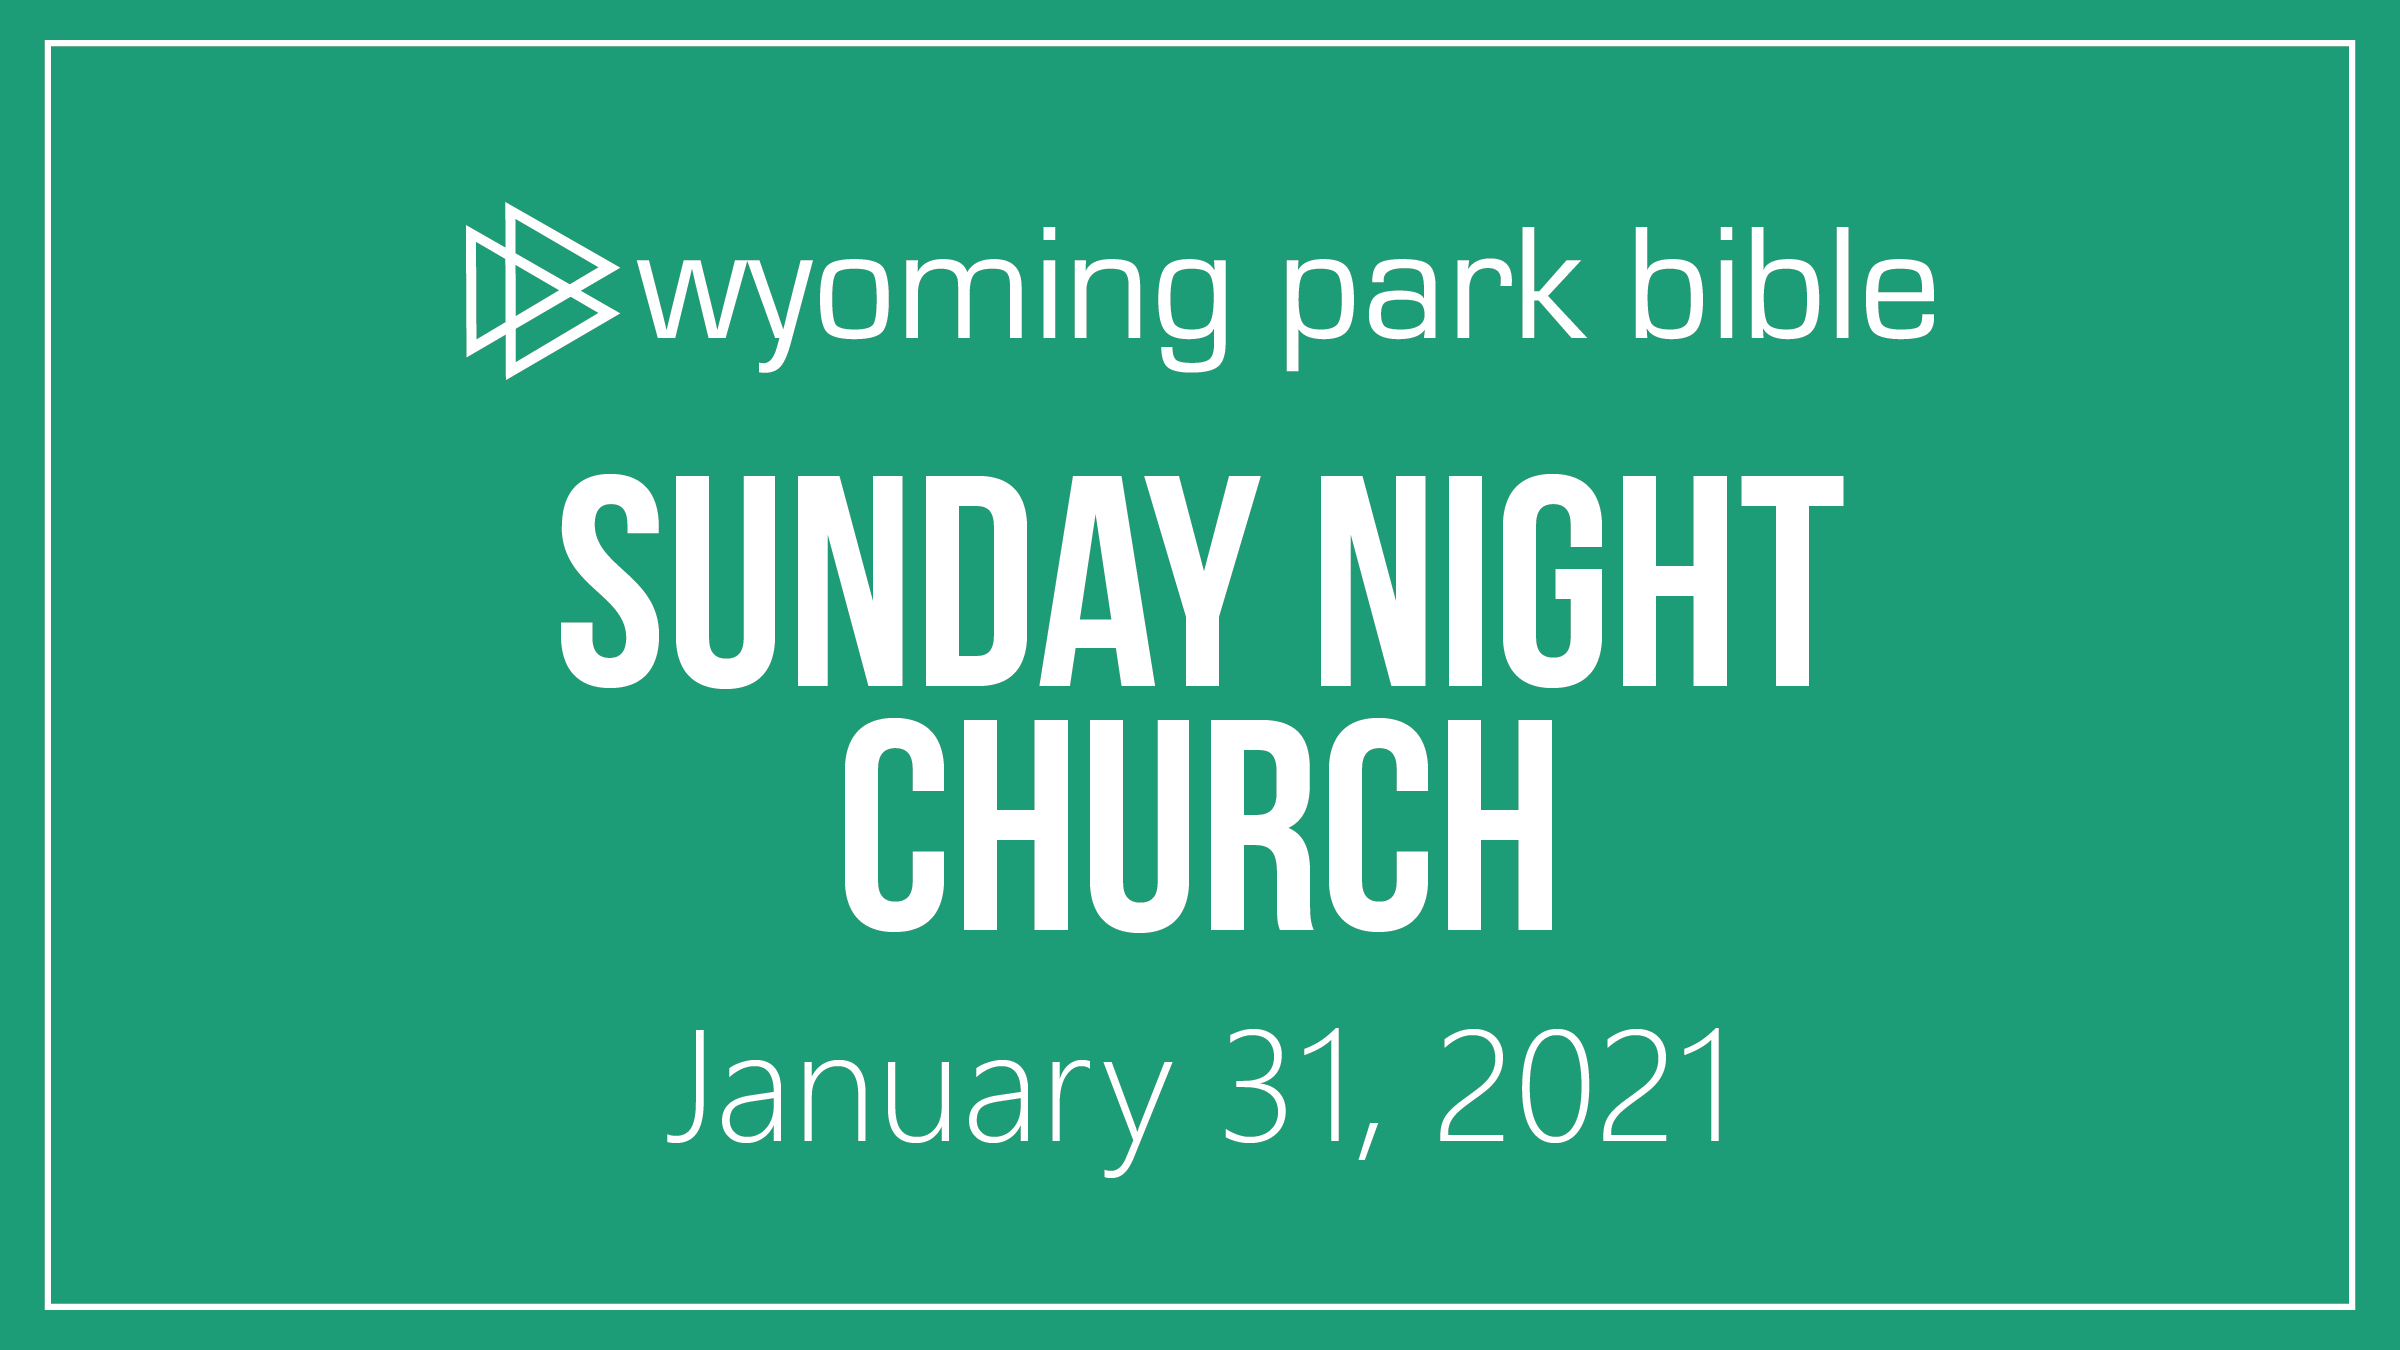 January 31, 2021 Sunday Night Church